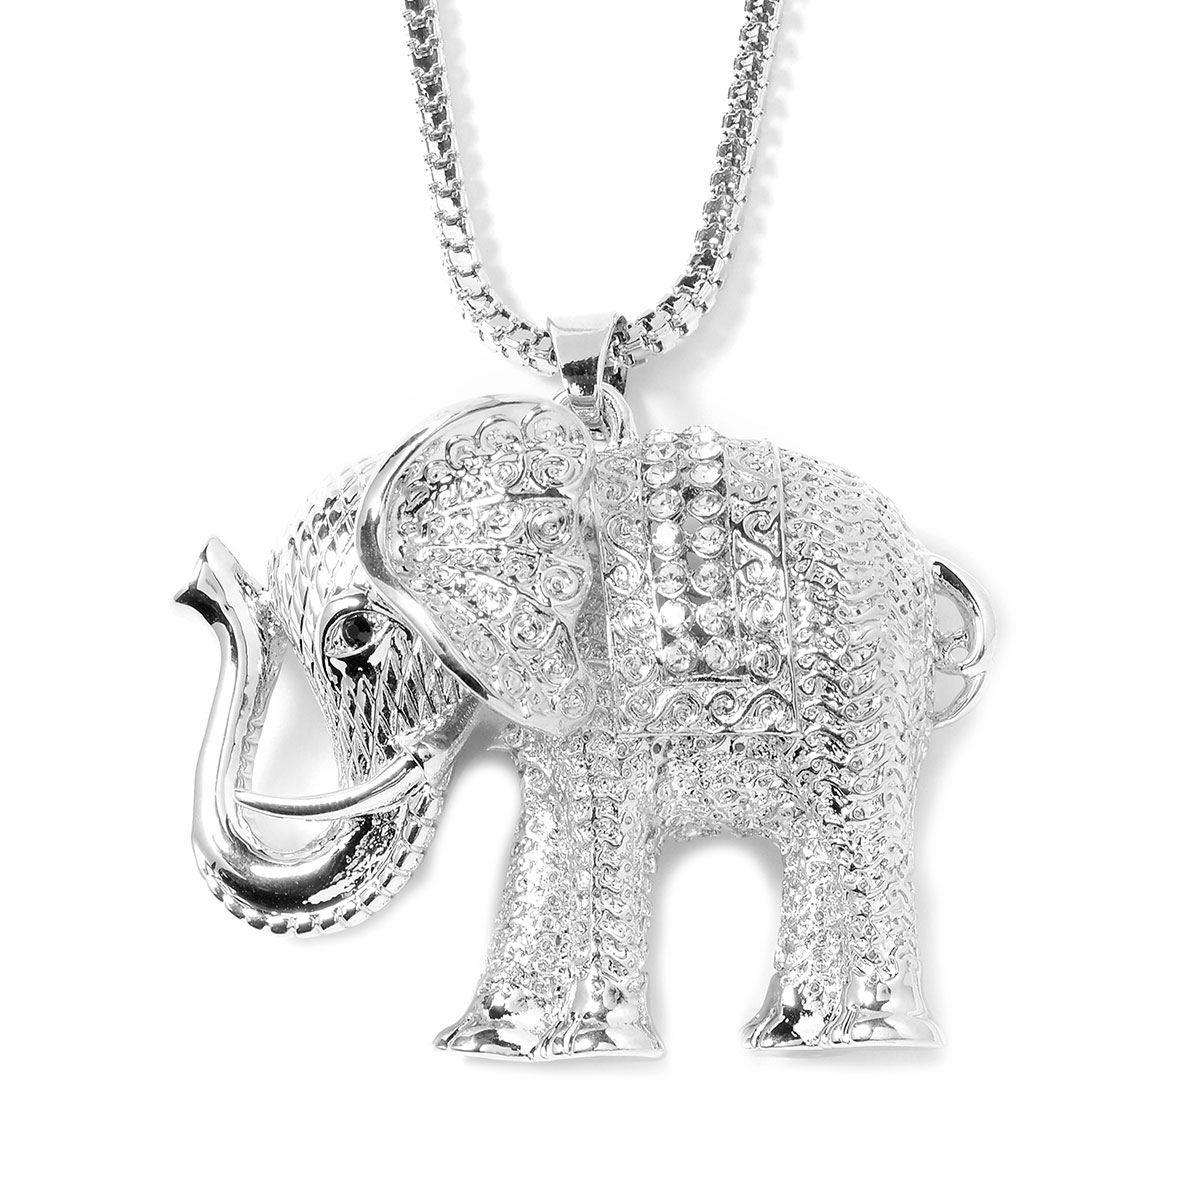 Chain Included 925 Sterling Silver Elephant Pendant Necklace Design 9